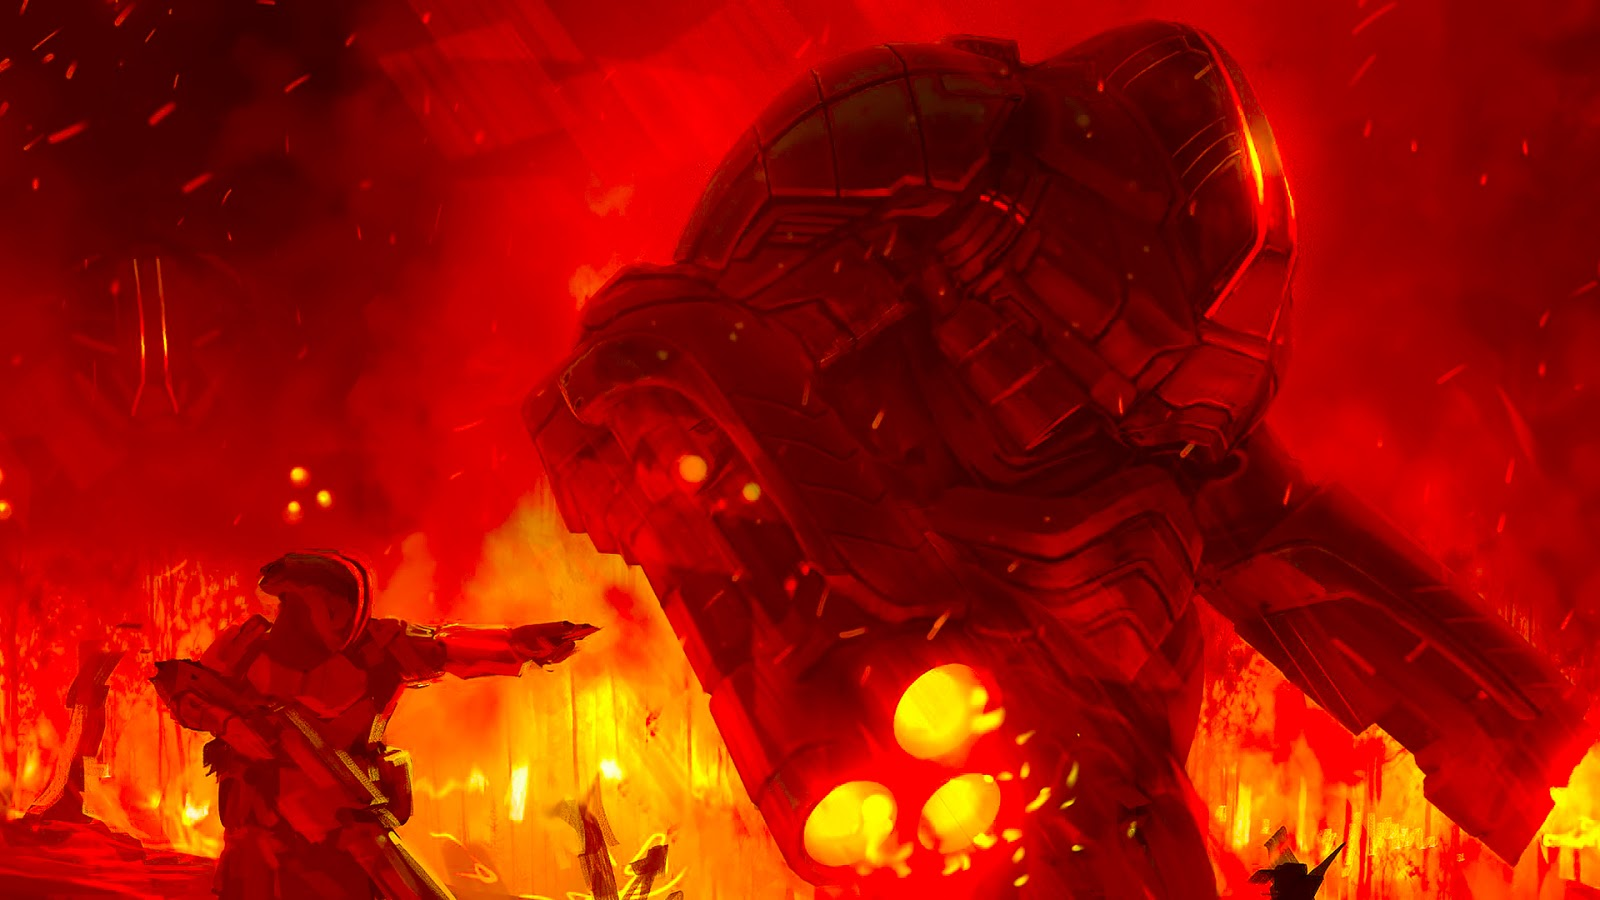 doom wallpaper art in 1920 x 1080 pixels to use as desktop wallpaper